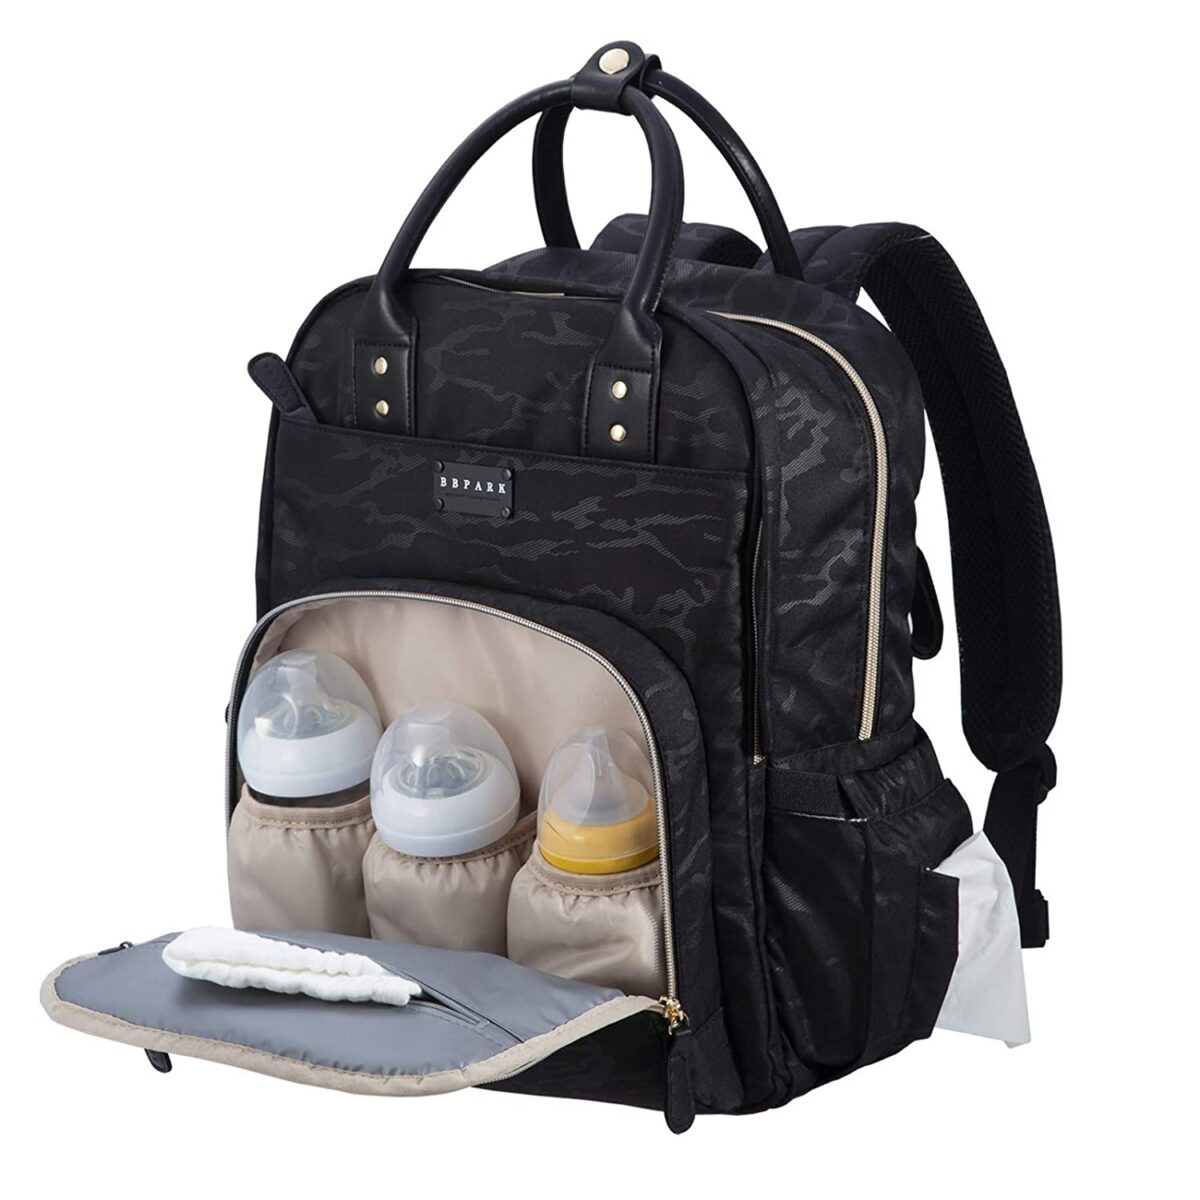 BBPARK Camo Diaper Bag Backpack